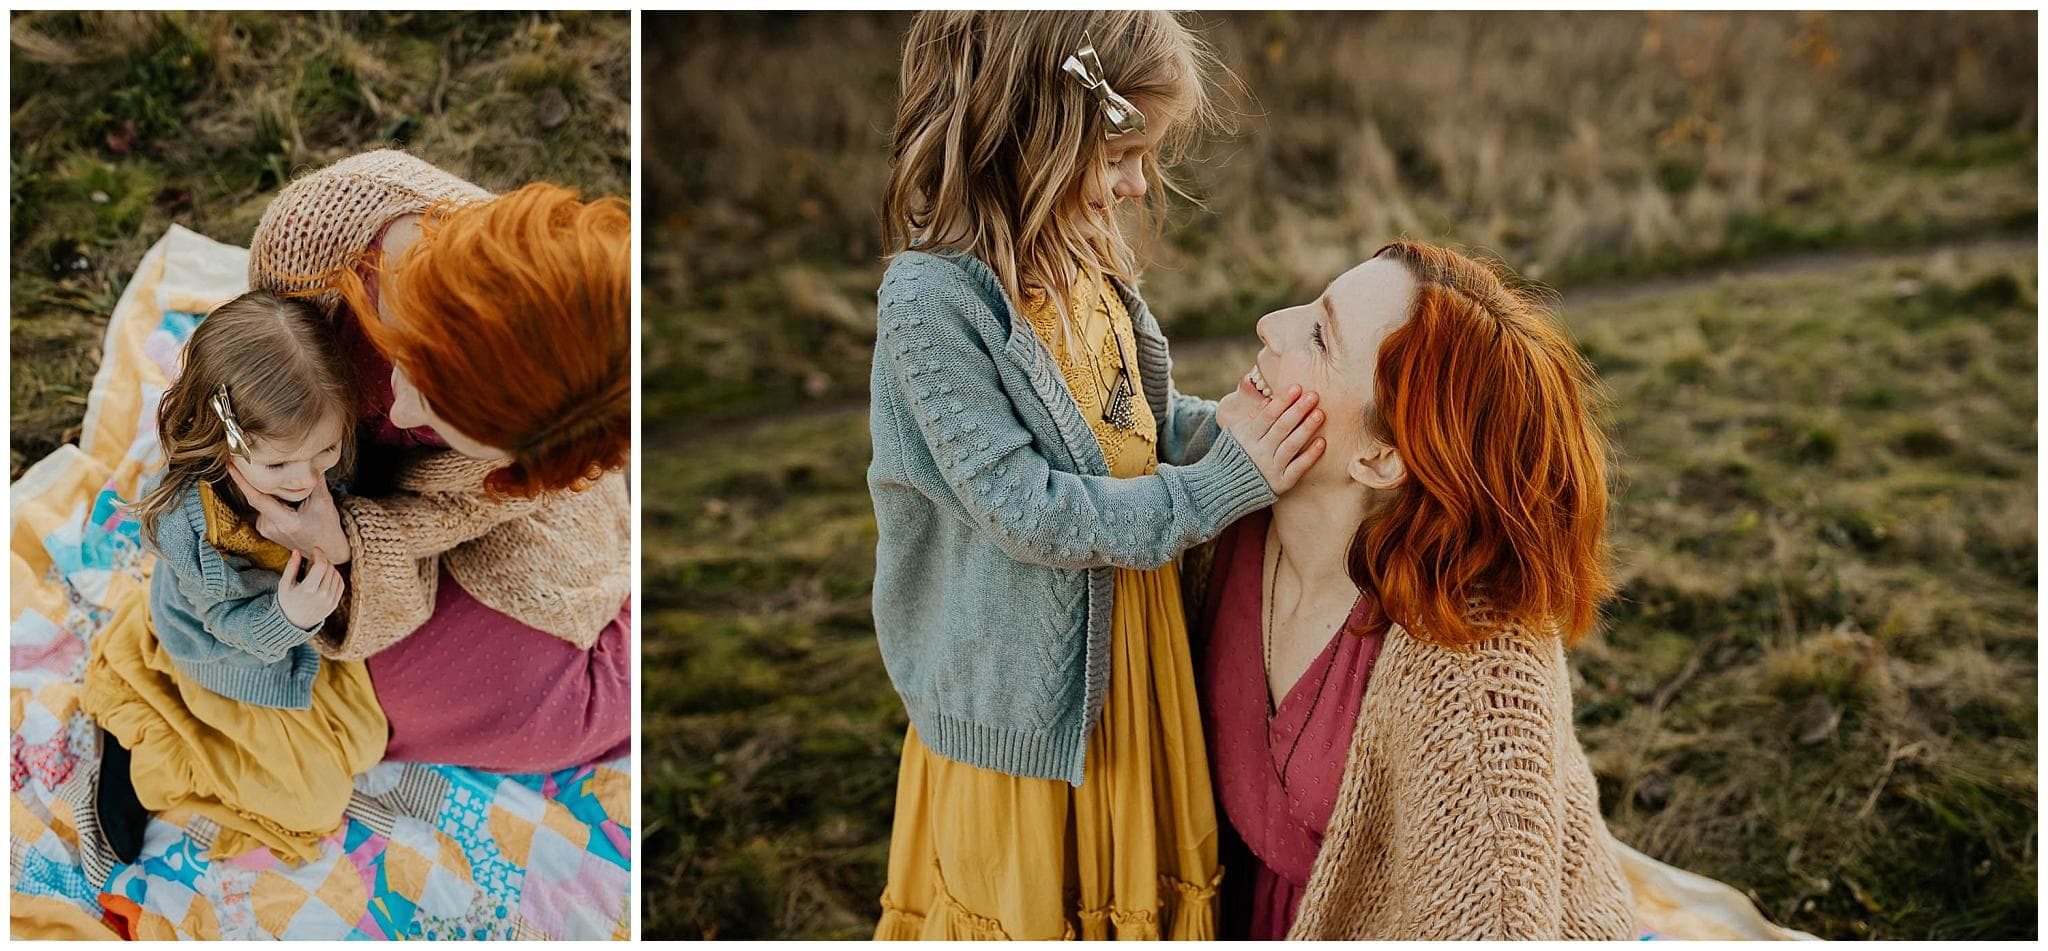 Mommy daughter image collage